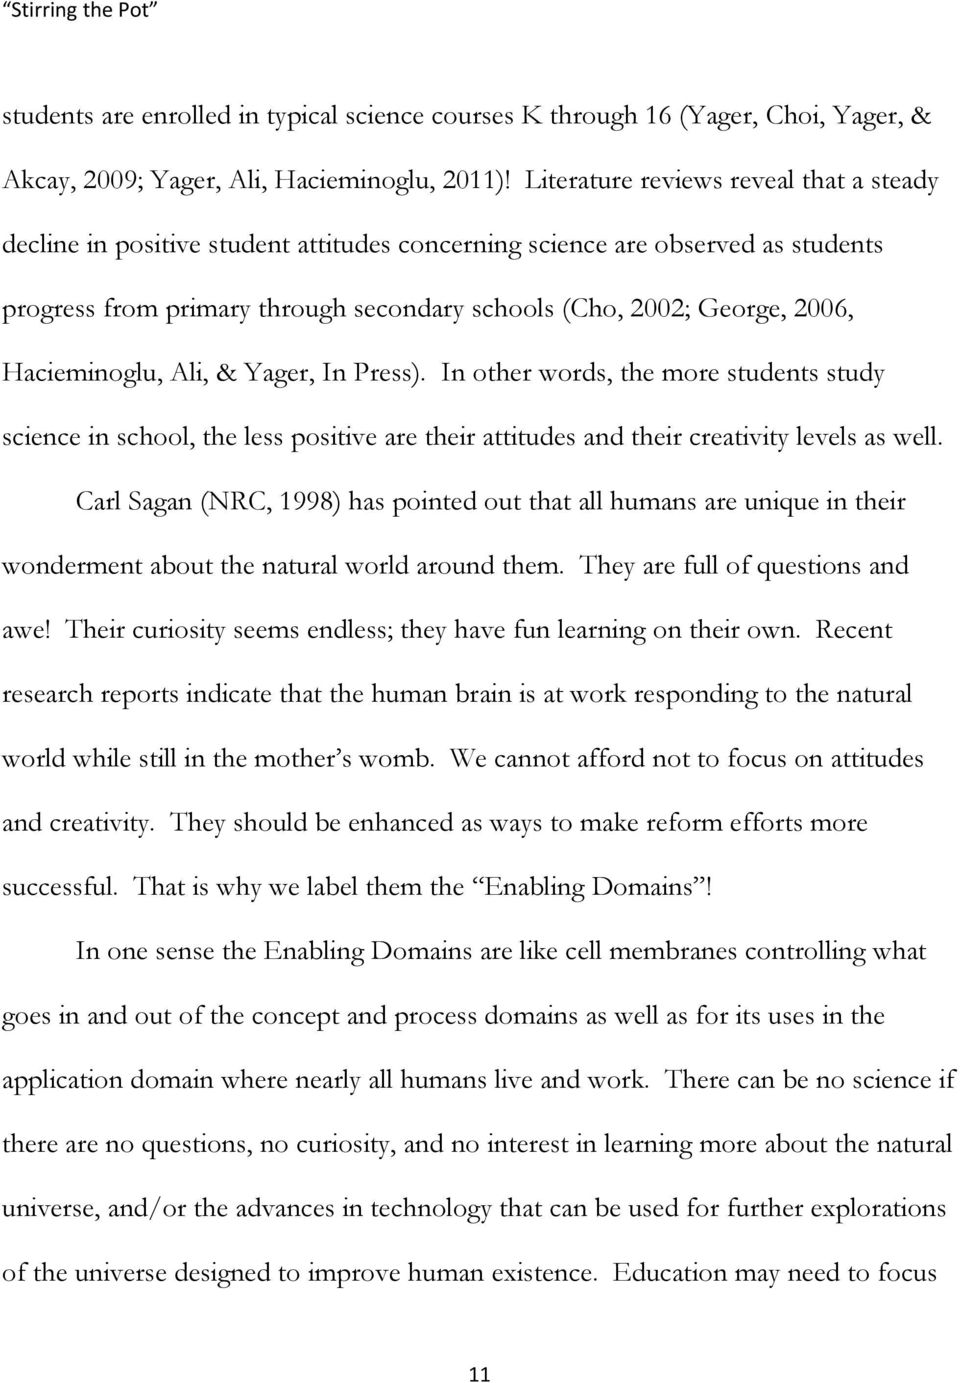 Hacieminoglu, Ali, & Yager, In Press). In other words, the more students study science in school, the less positive are their attitudes and their creativity levels as well.